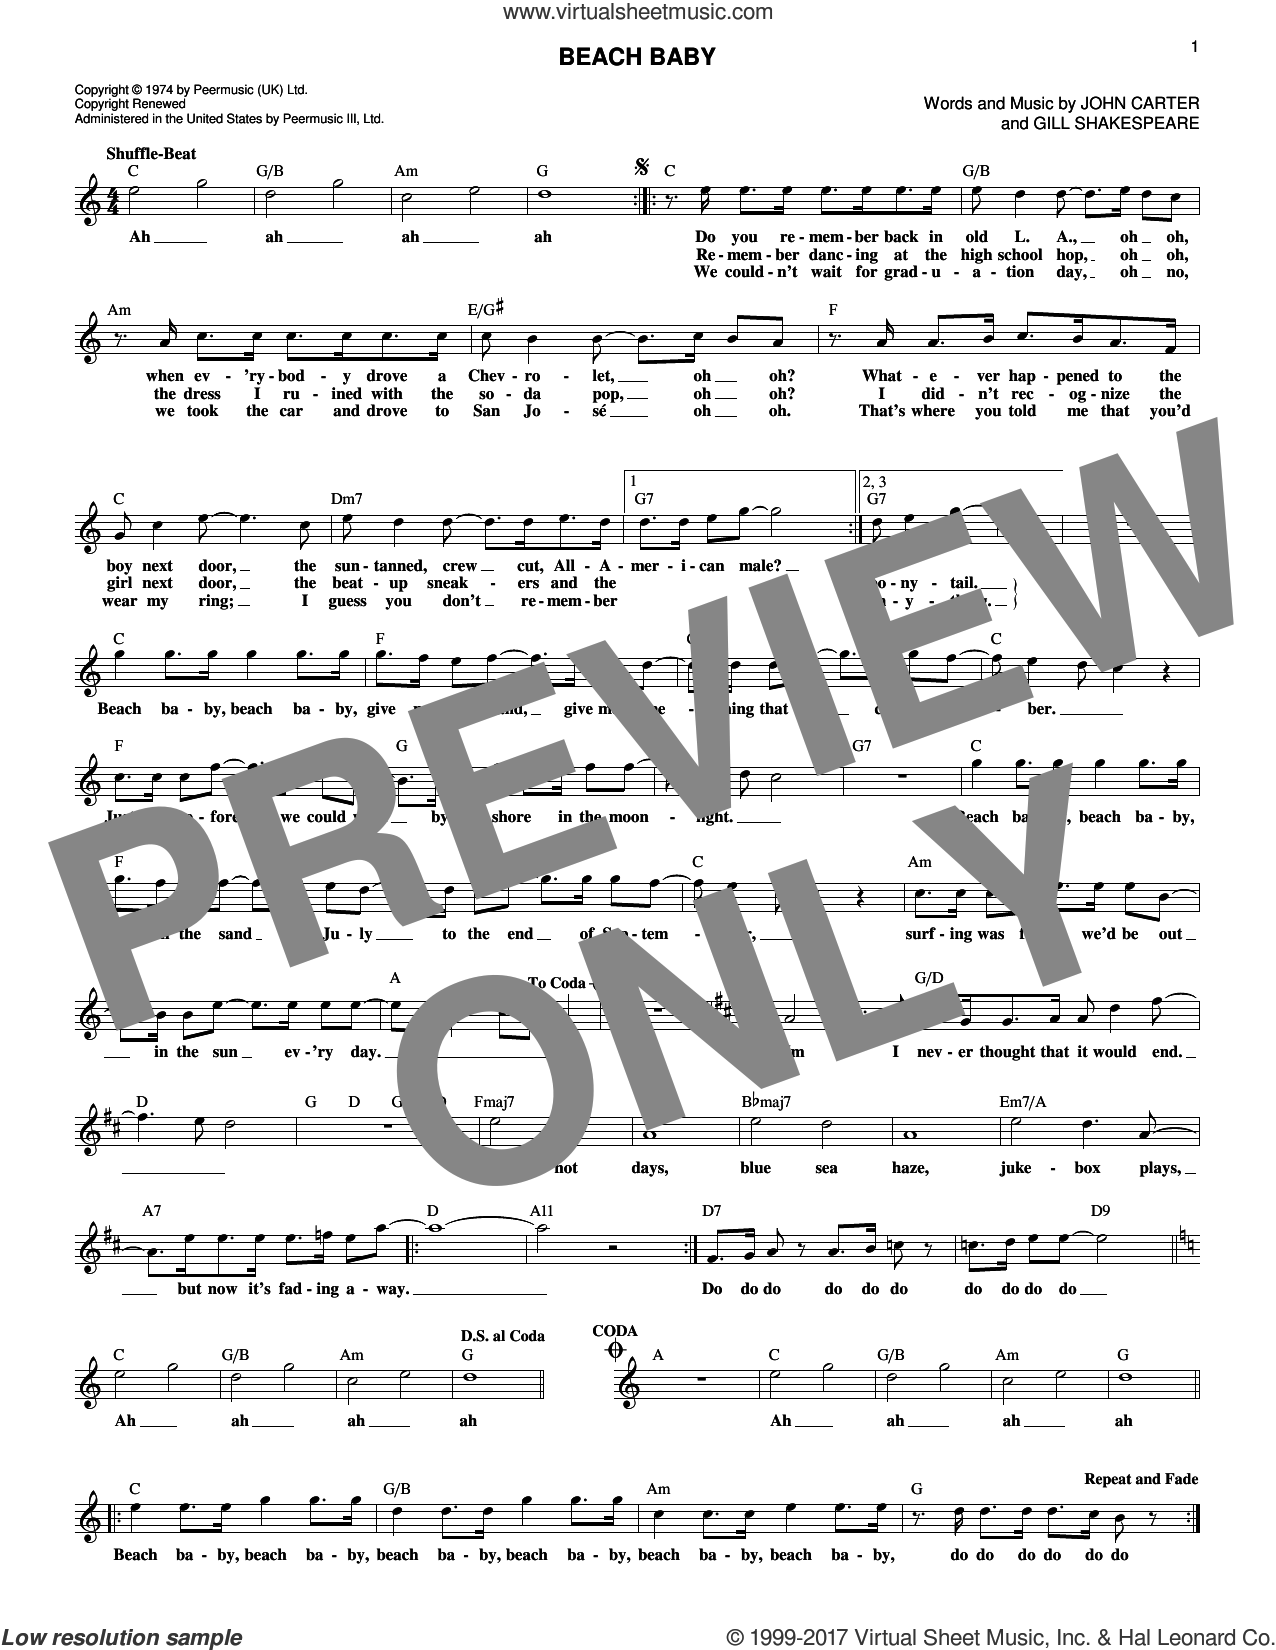 Beach Baby sheet music for voice and other instruments (fake book) by The First Class, Gill Shakespeare and John Carter, intermediate skill level